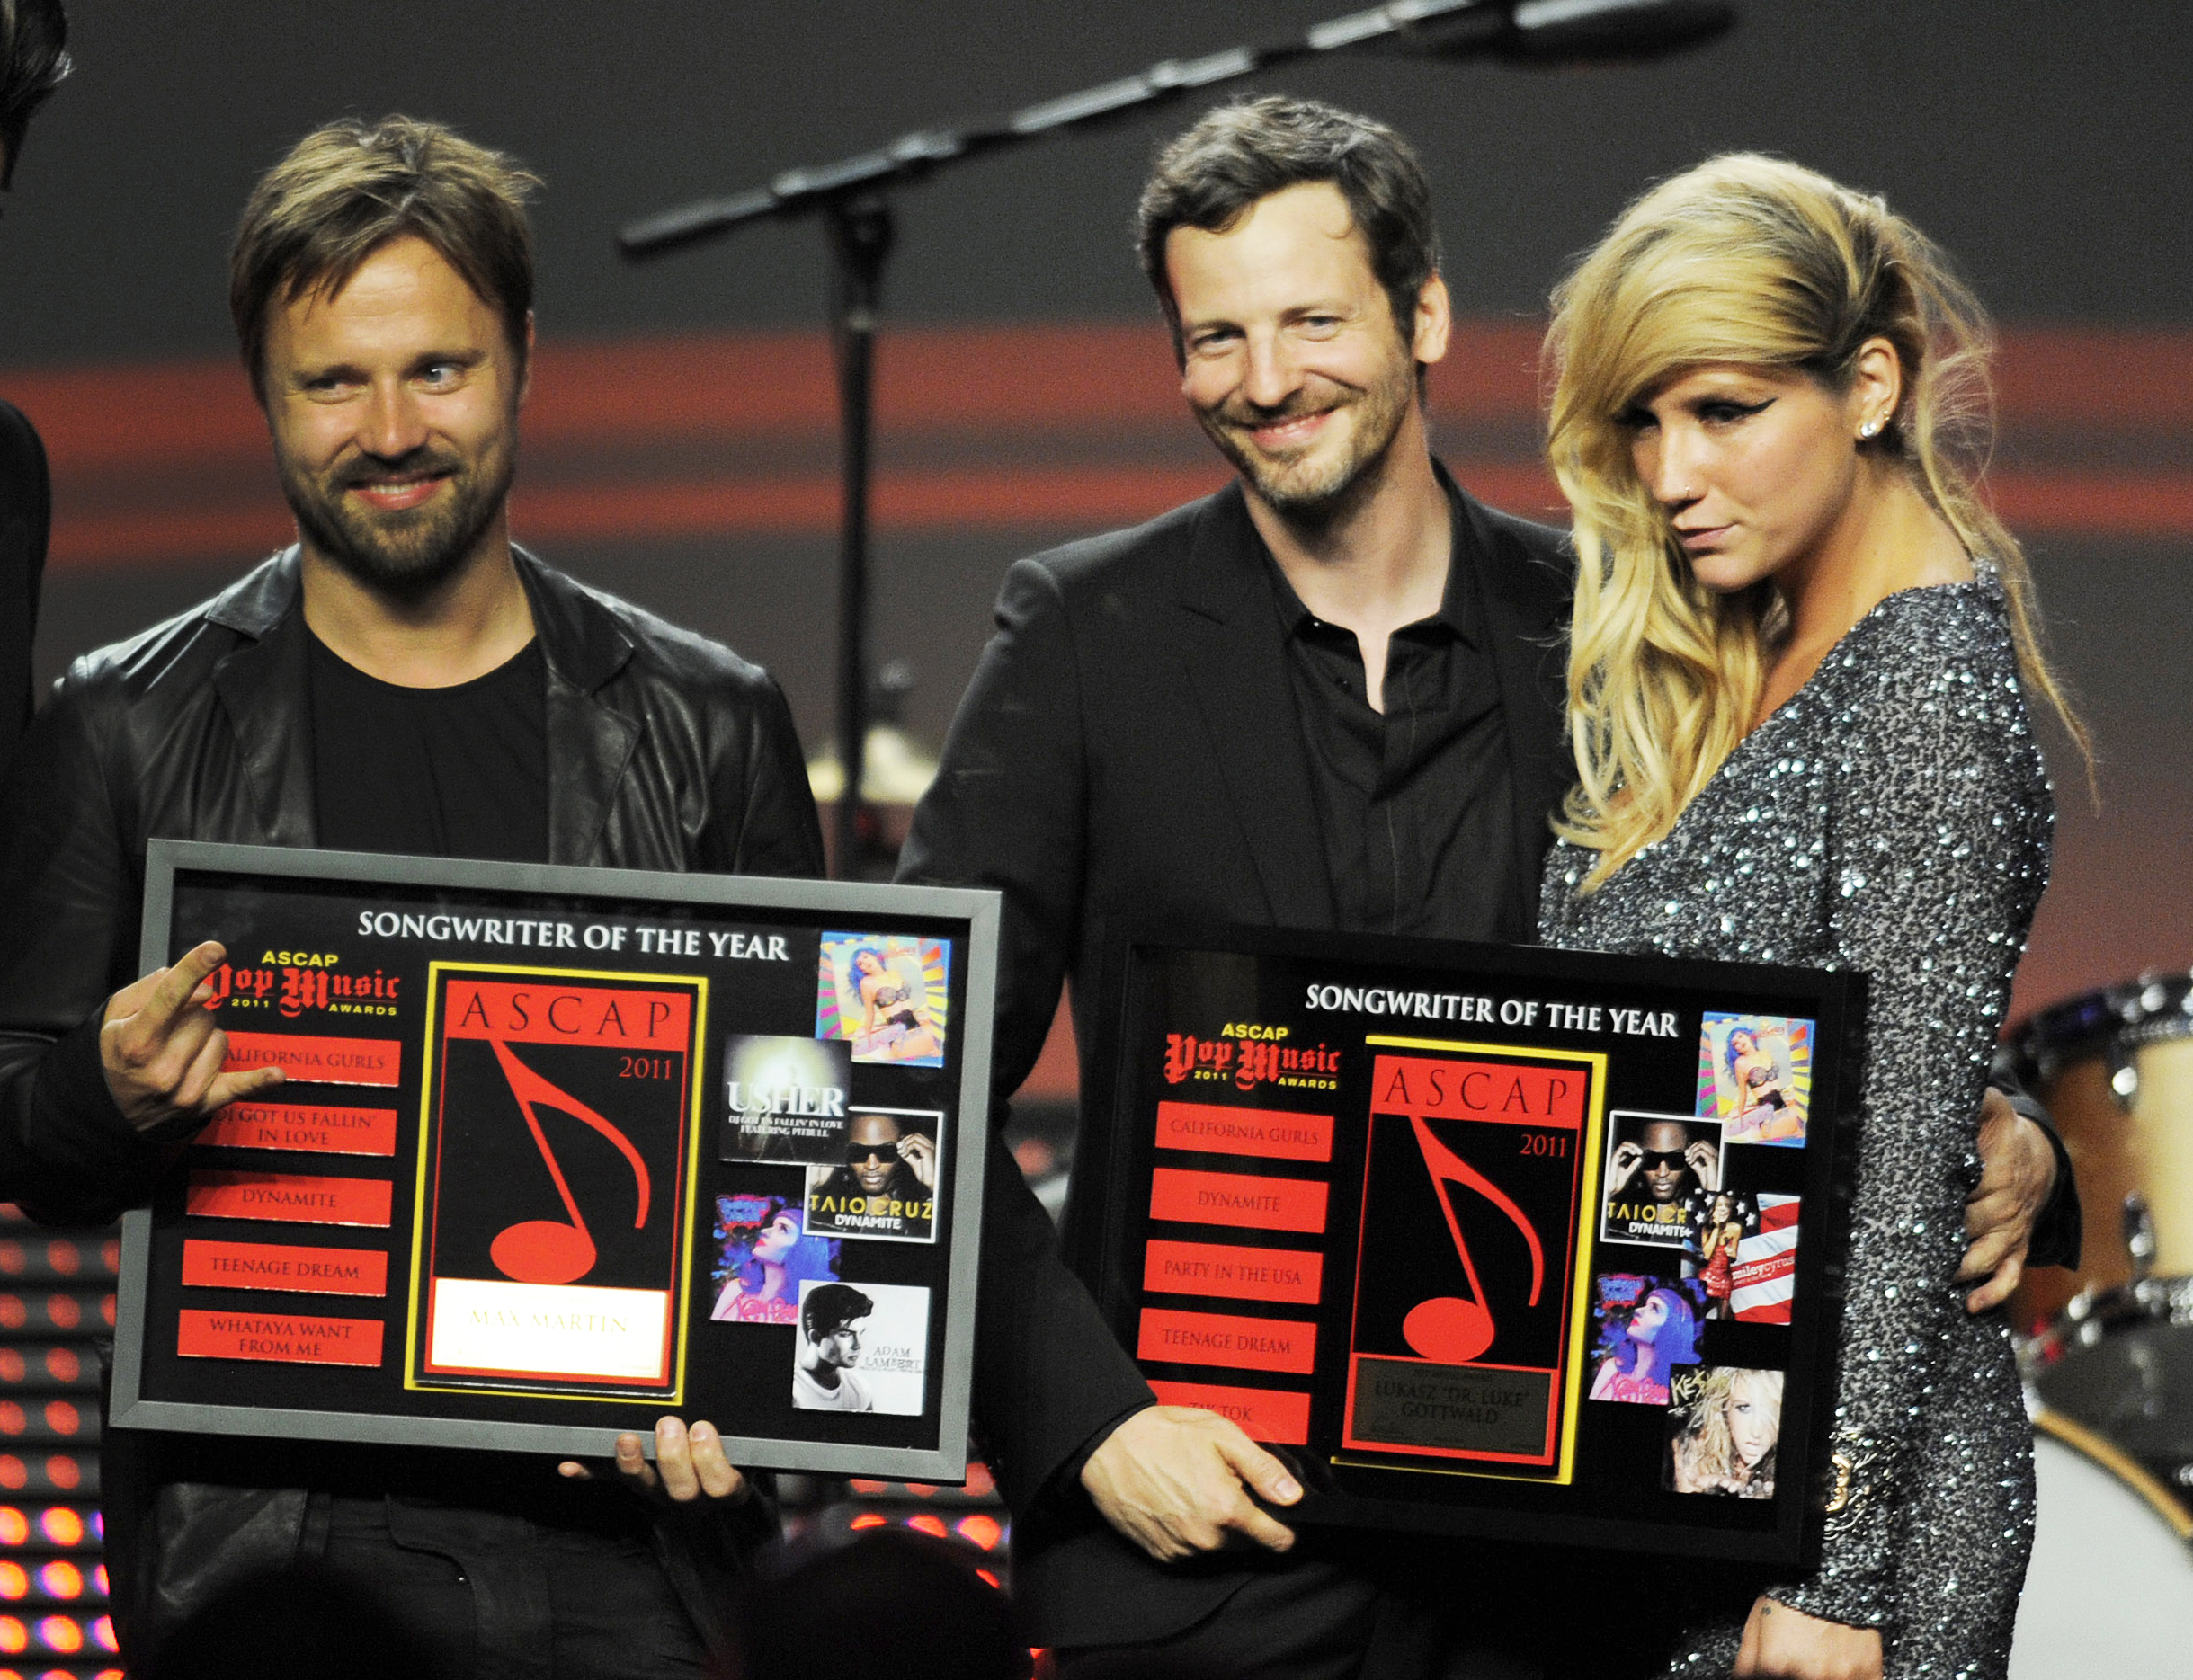 All That Way For Love 2011 kesha and dr. luke: everything you need to know to